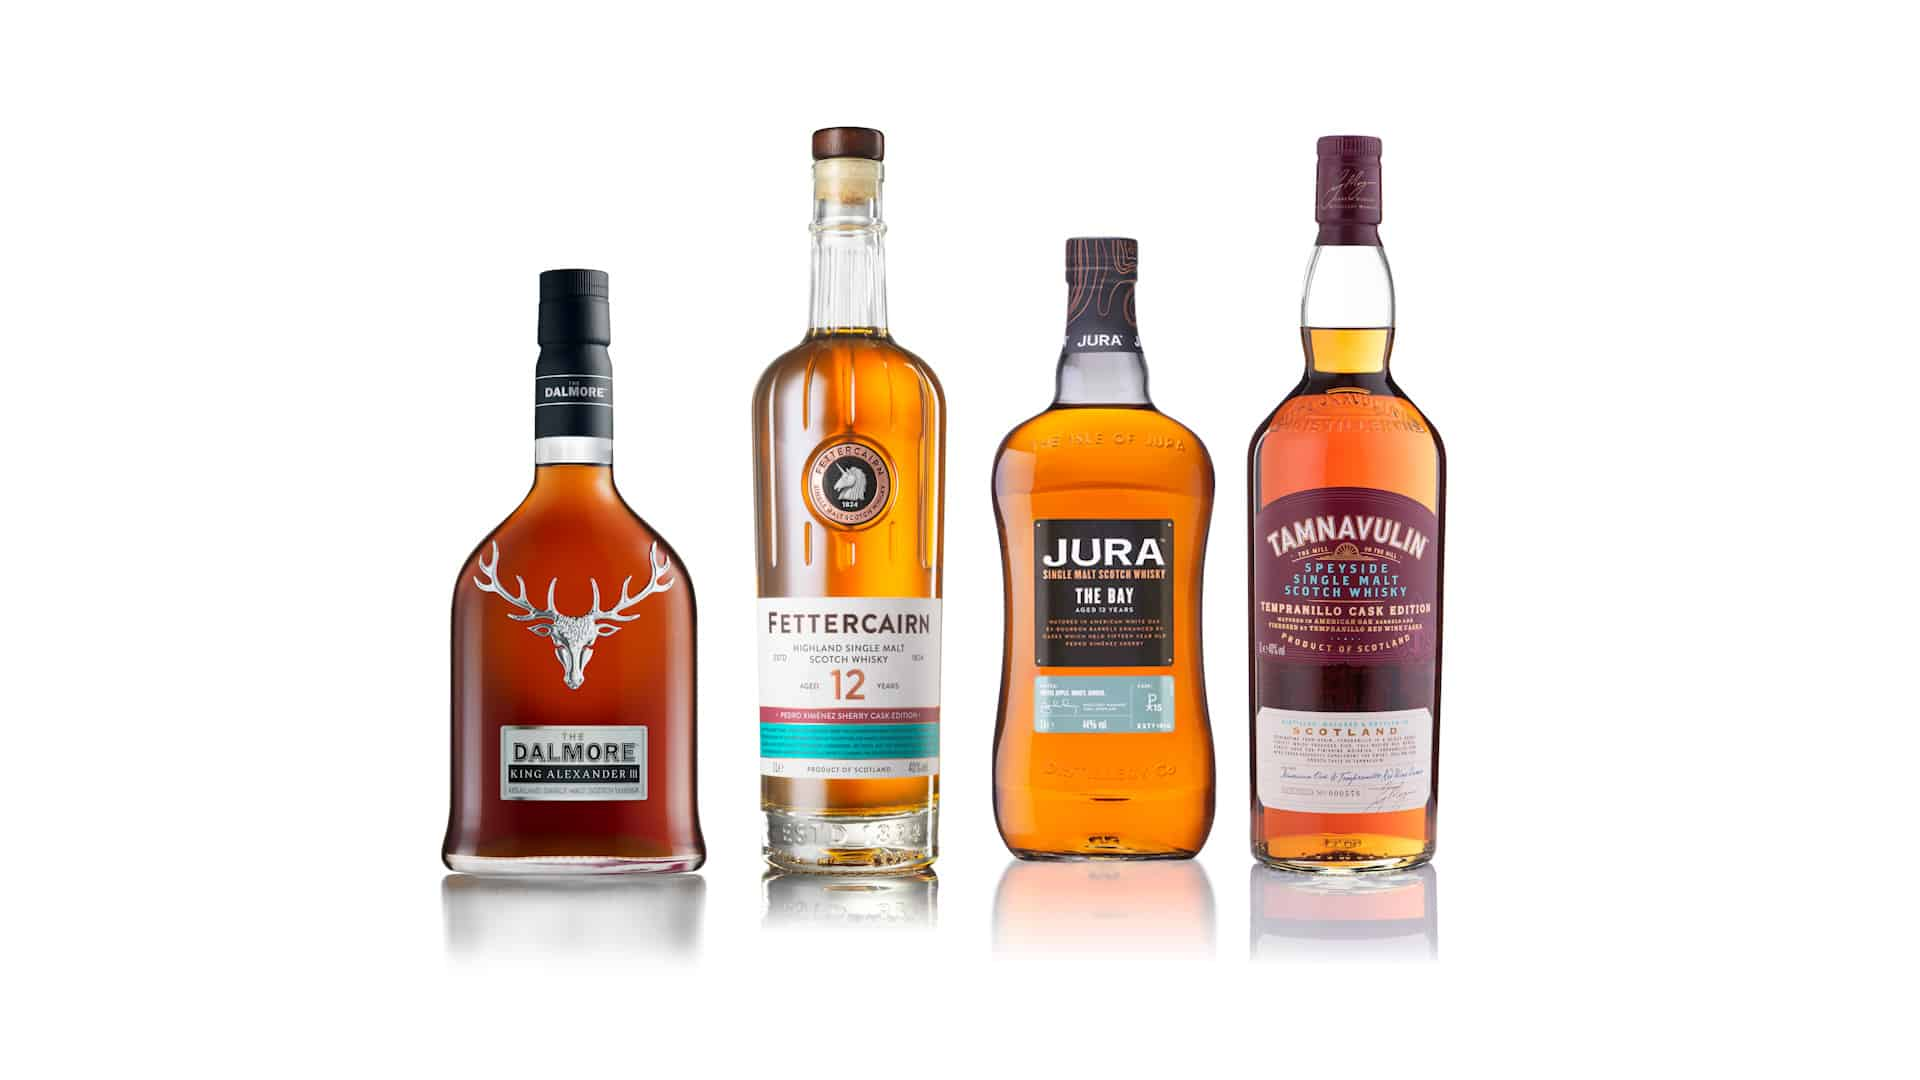 Whyte & Mackay poised to take Malt and travel retail to the next level